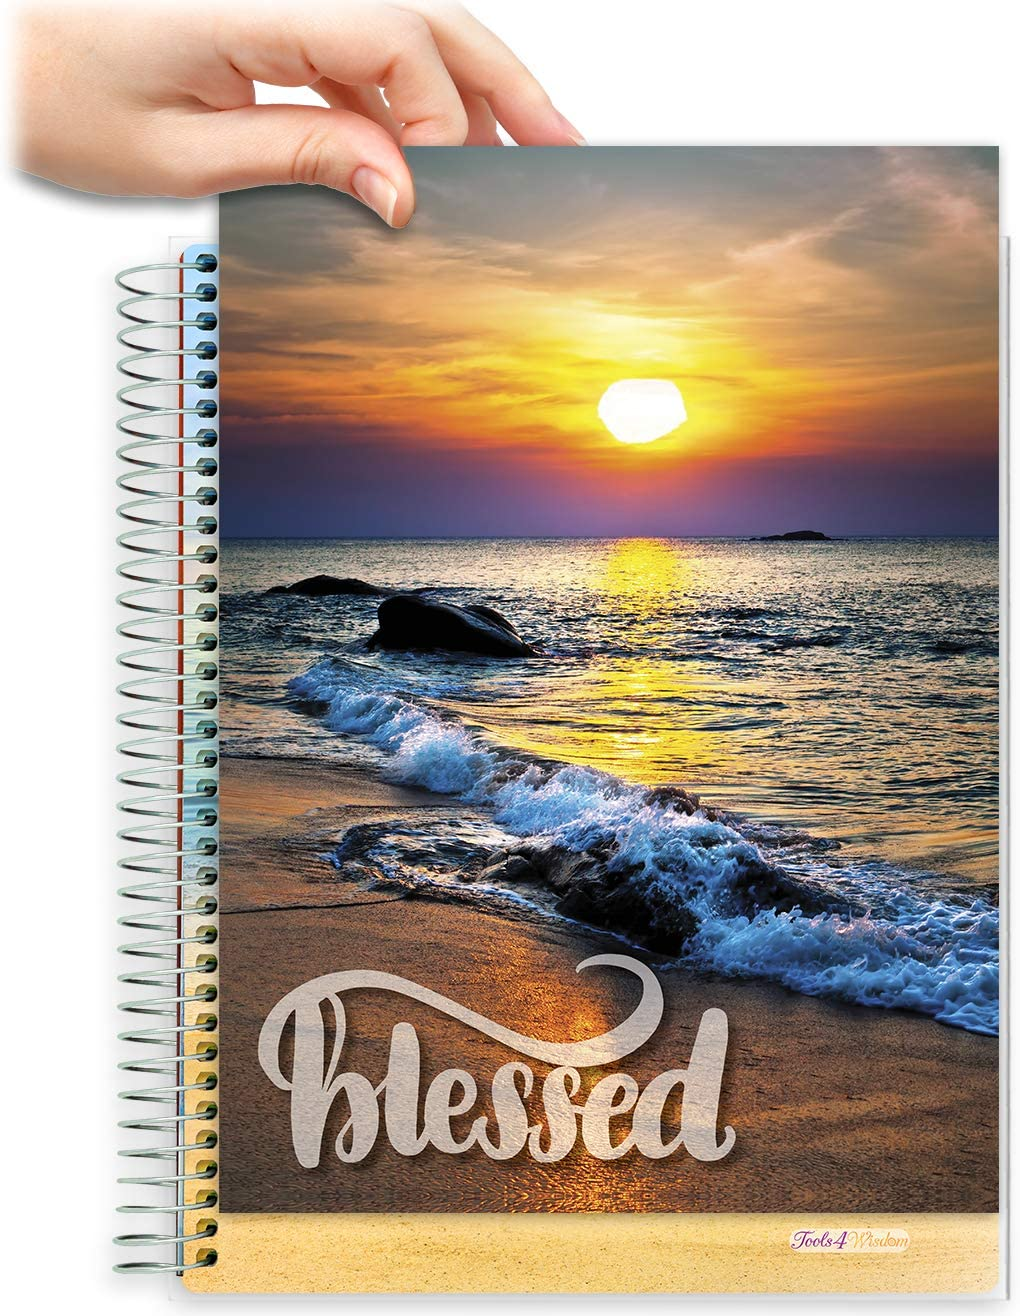 8.5x11 Customizable Softcover Planner • April 2021 to June 2022 Academic Year • Blessed Beach